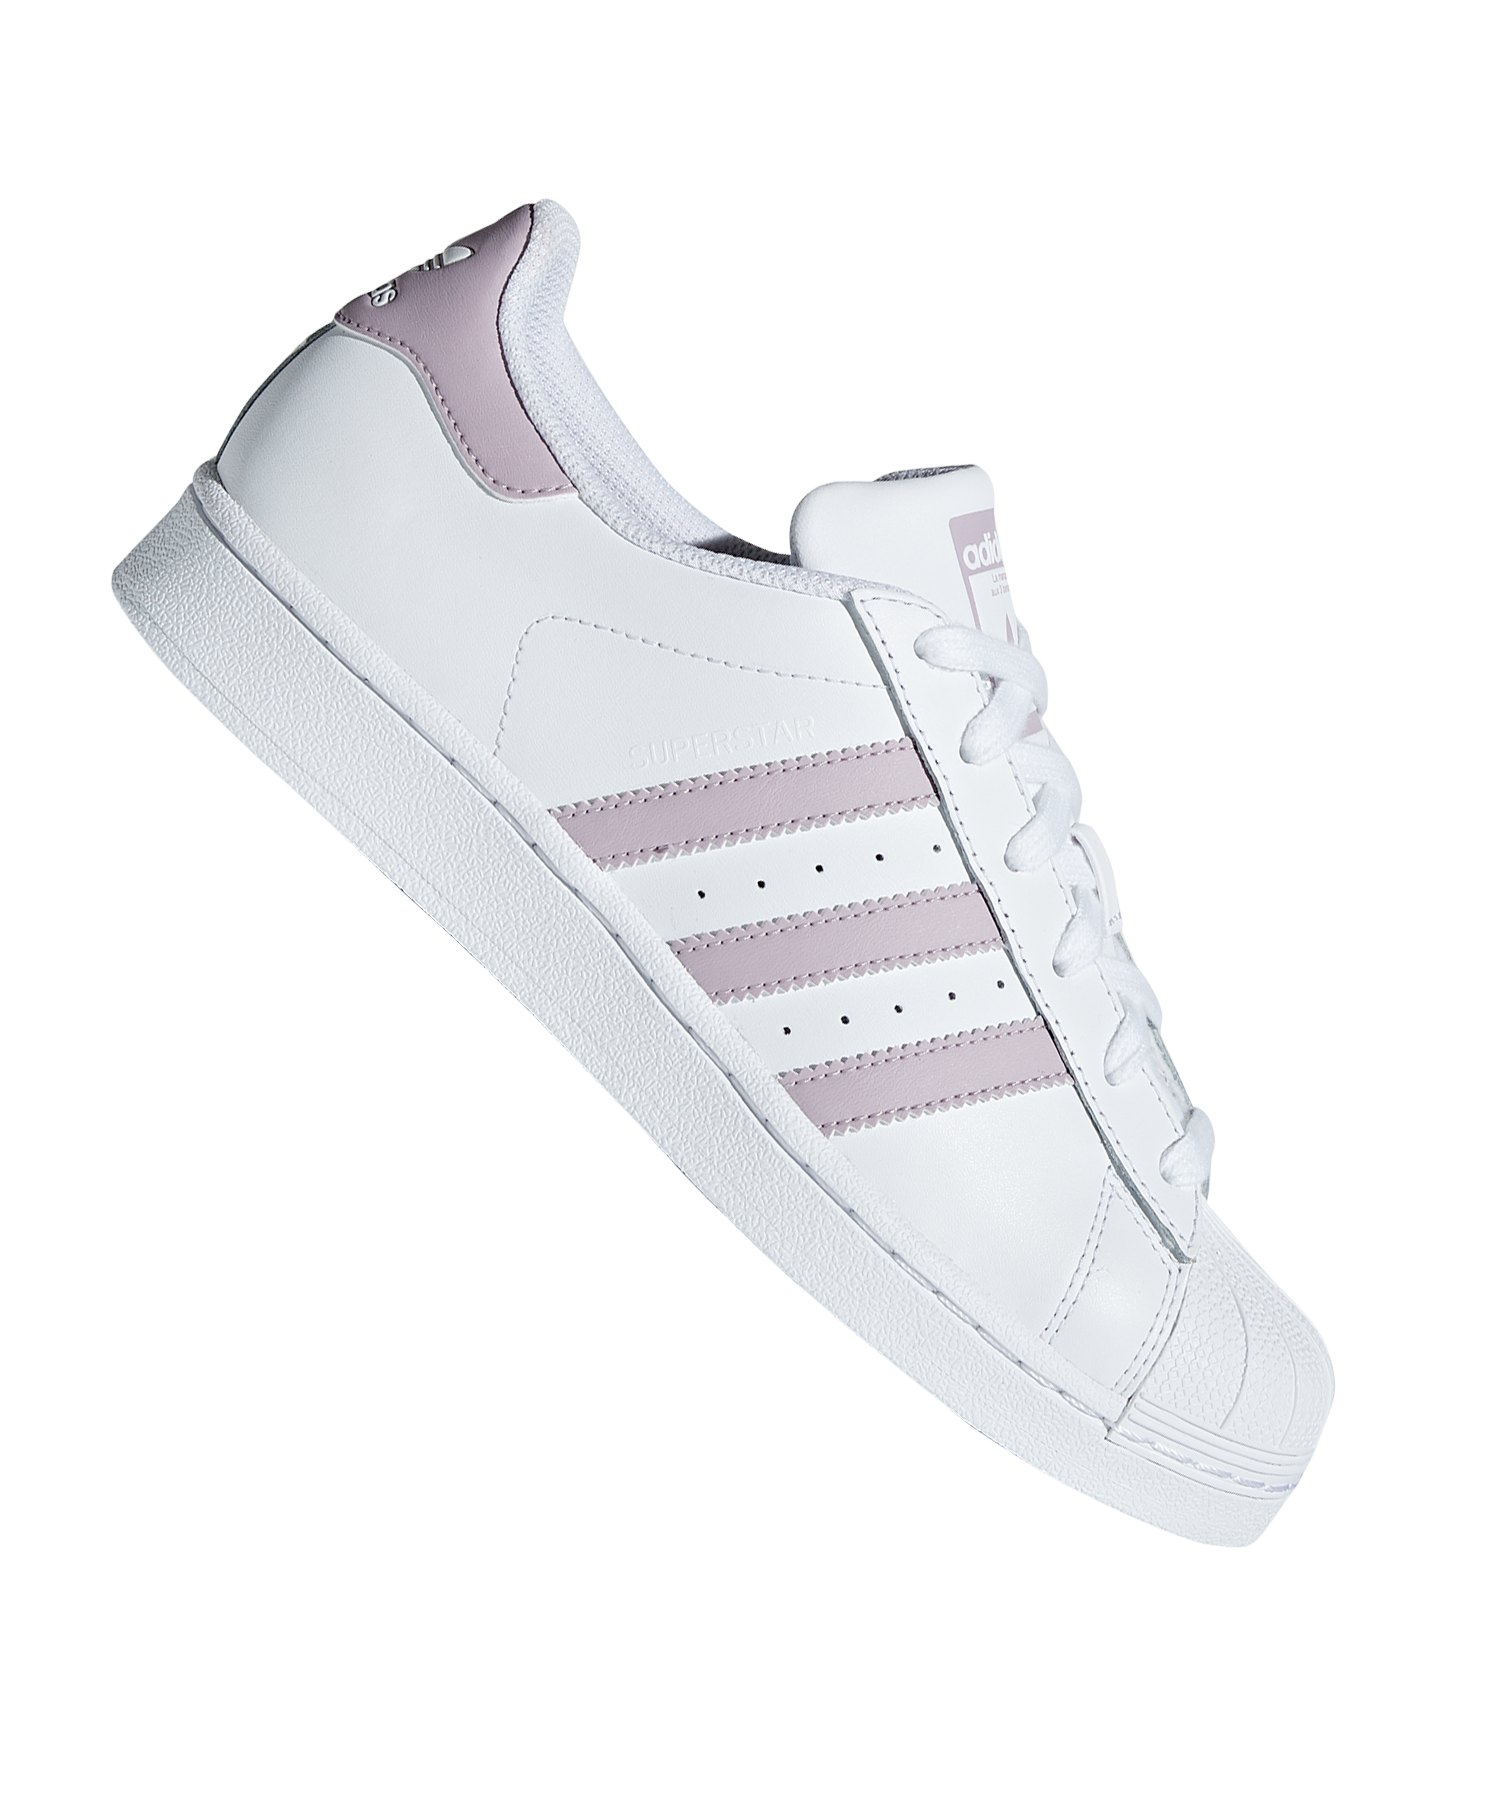 half off 16c00 4f631 adidas Originals Superstar Sneaker Damen Weiss